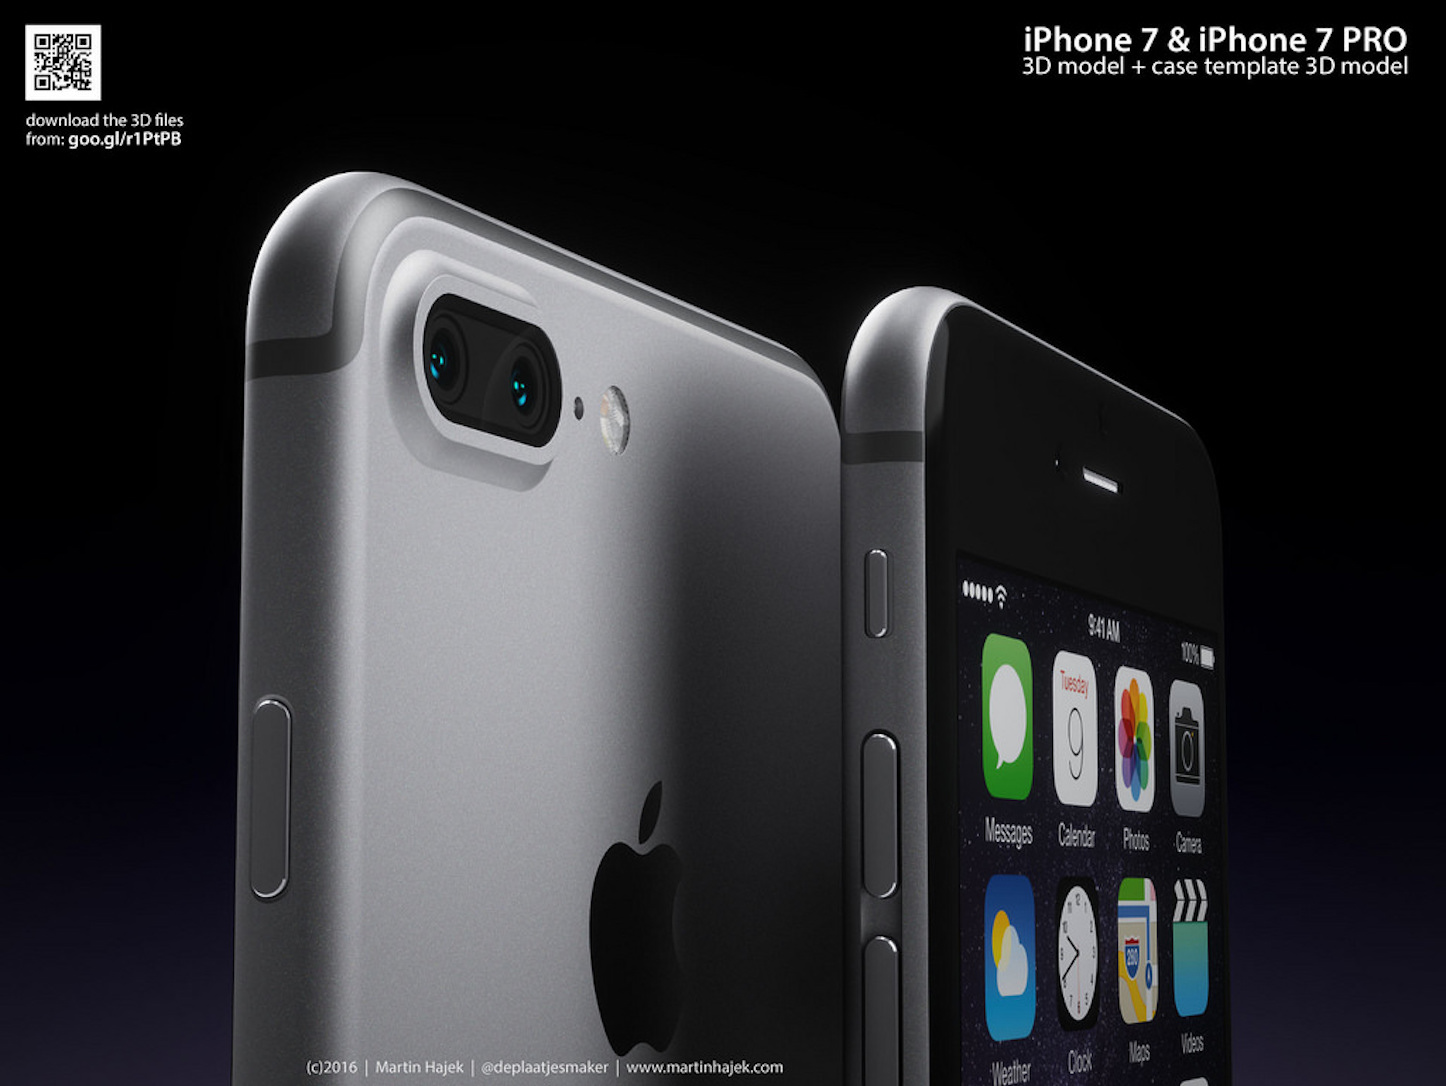 iphone-7-pro-concept-image-5.jpg